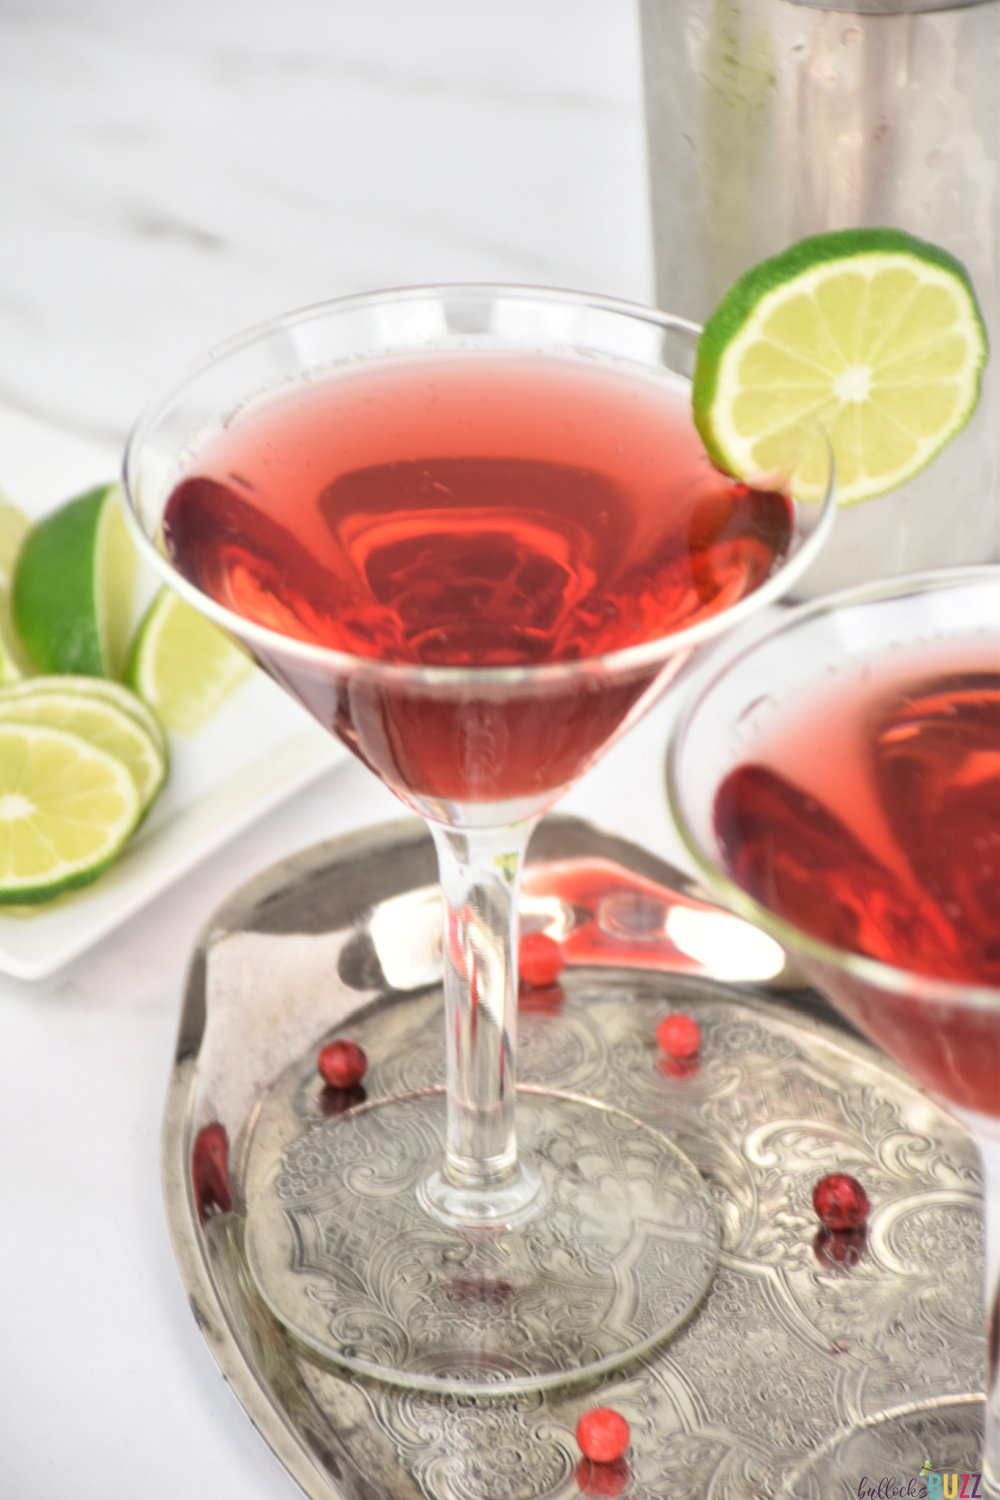 With a flavor profile that is bold and sweet, but also tart and sassy at the same time, the Scarkett O'Hara cocktail is deliciously refreshing!  #cocktails #recipes